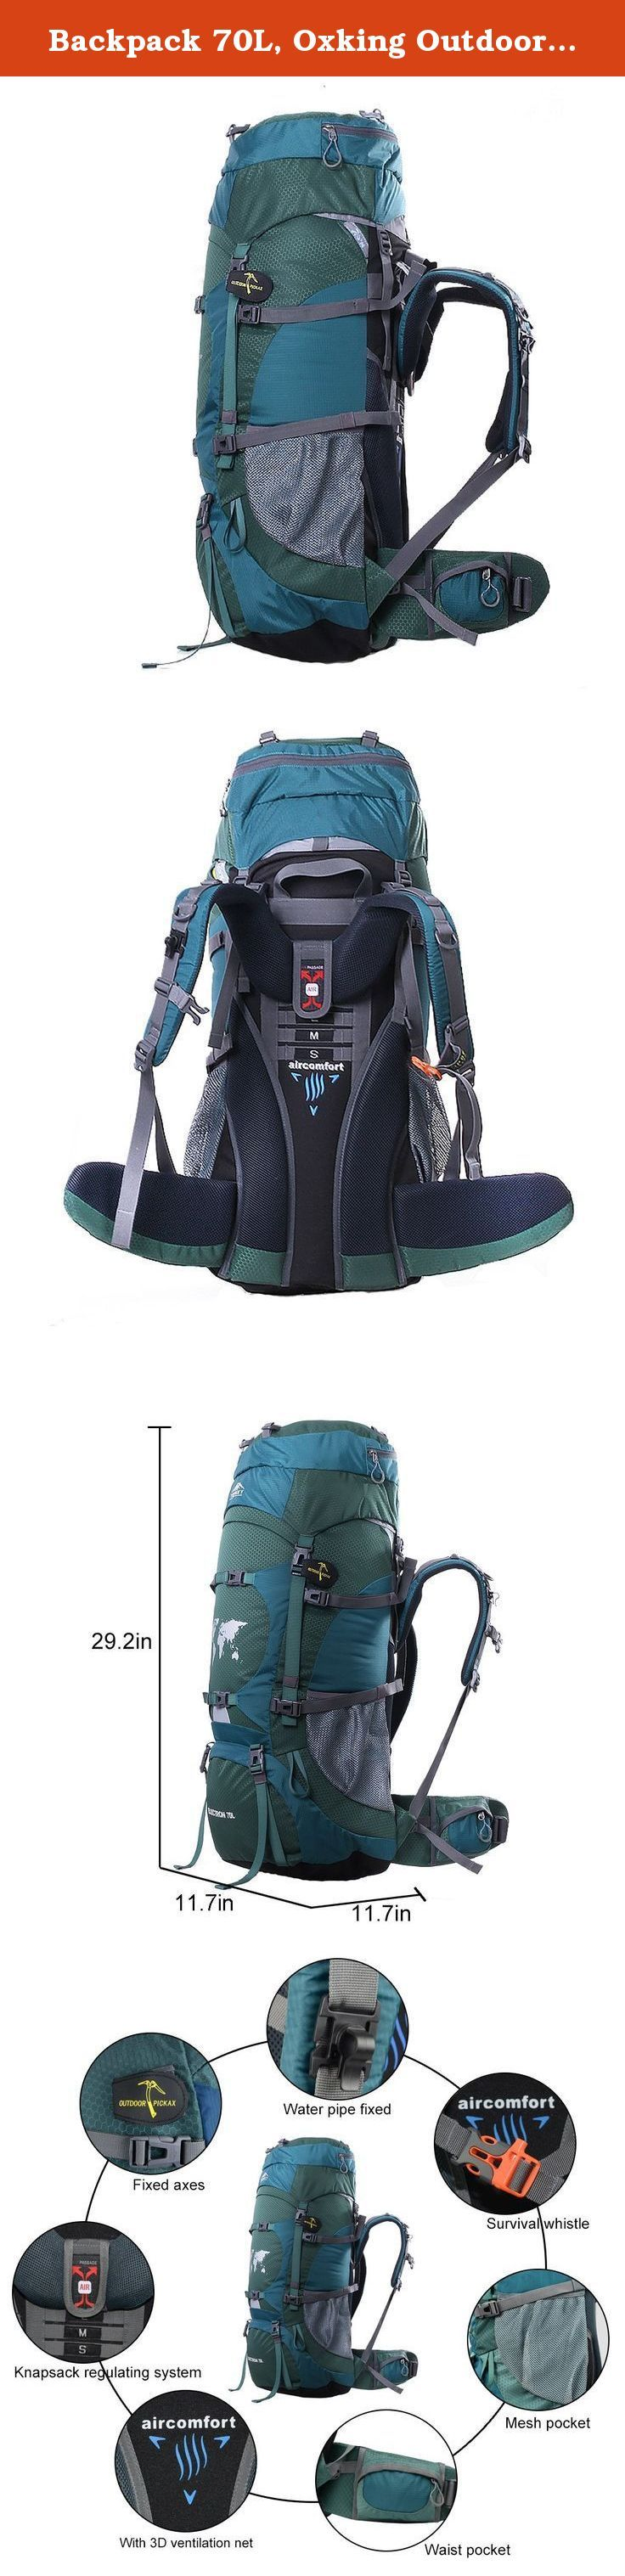 Backpack 70L, Oxking Outdoor Hiking Climbing Camping Backpack Professional Waterproof Mountaineering Bag Trekking Rucksack Large Travel Daypack. Features: 1.70L high-capacity,lightweight compact packable daypack, professional mountaineering Bag. Use SBS Zipper, YNS Brand fastener, use air cushion belt suspension system, Internal Frame Pack. 2.Super carrying professional adjustable weight decomposition system, could be adjustable according to your height, 3 sizes for the height: S/M/L...